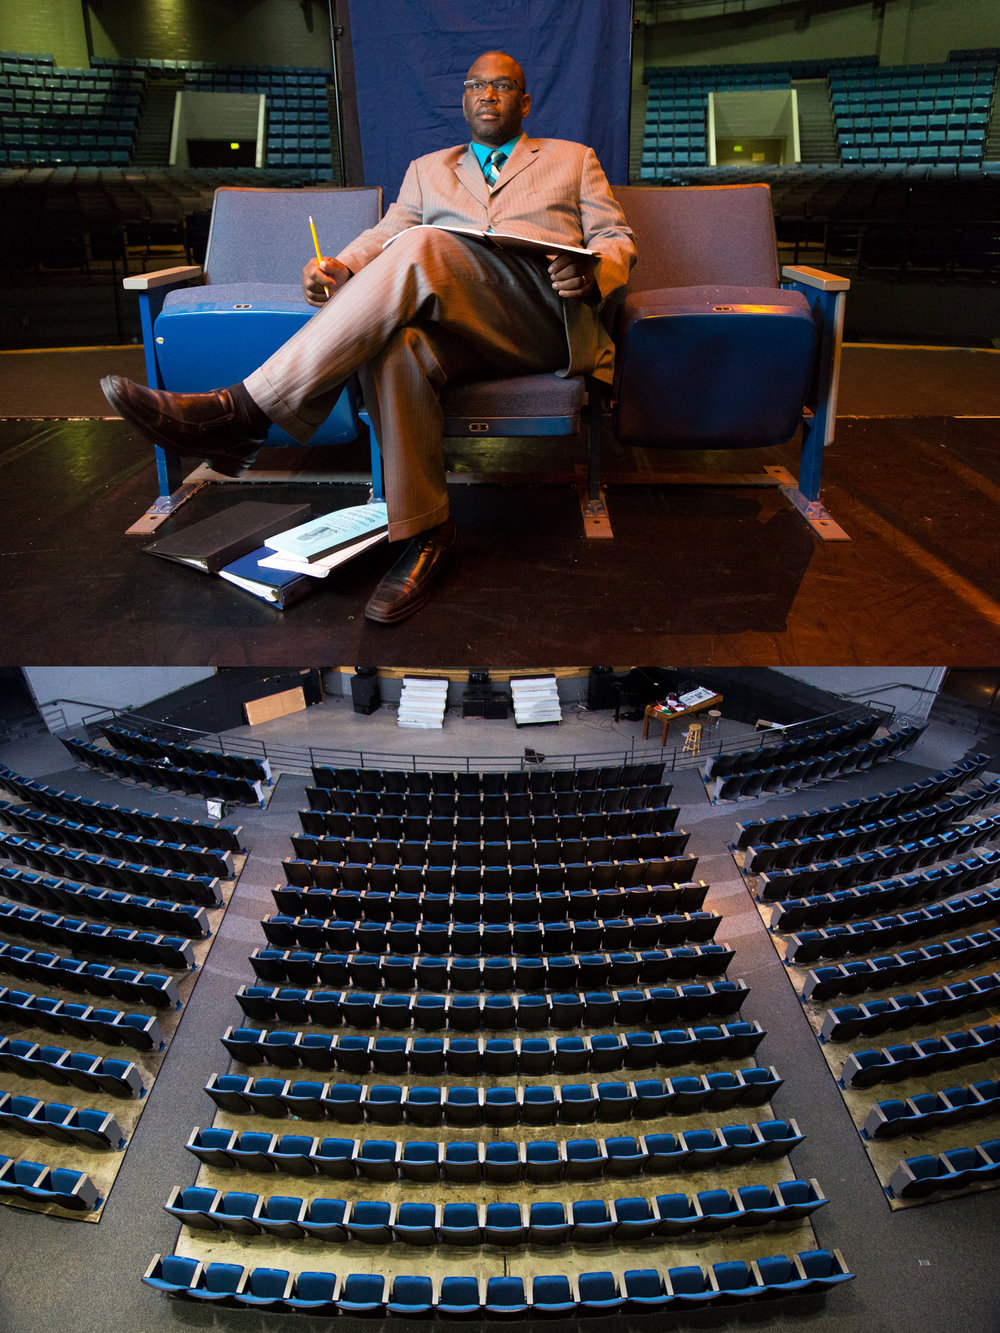 Wendell Tabb, Theatre Director at Hillside High School, poses for a portrait on Hillside's stage above. Below, the seats of the theater in which Tabb does his work.